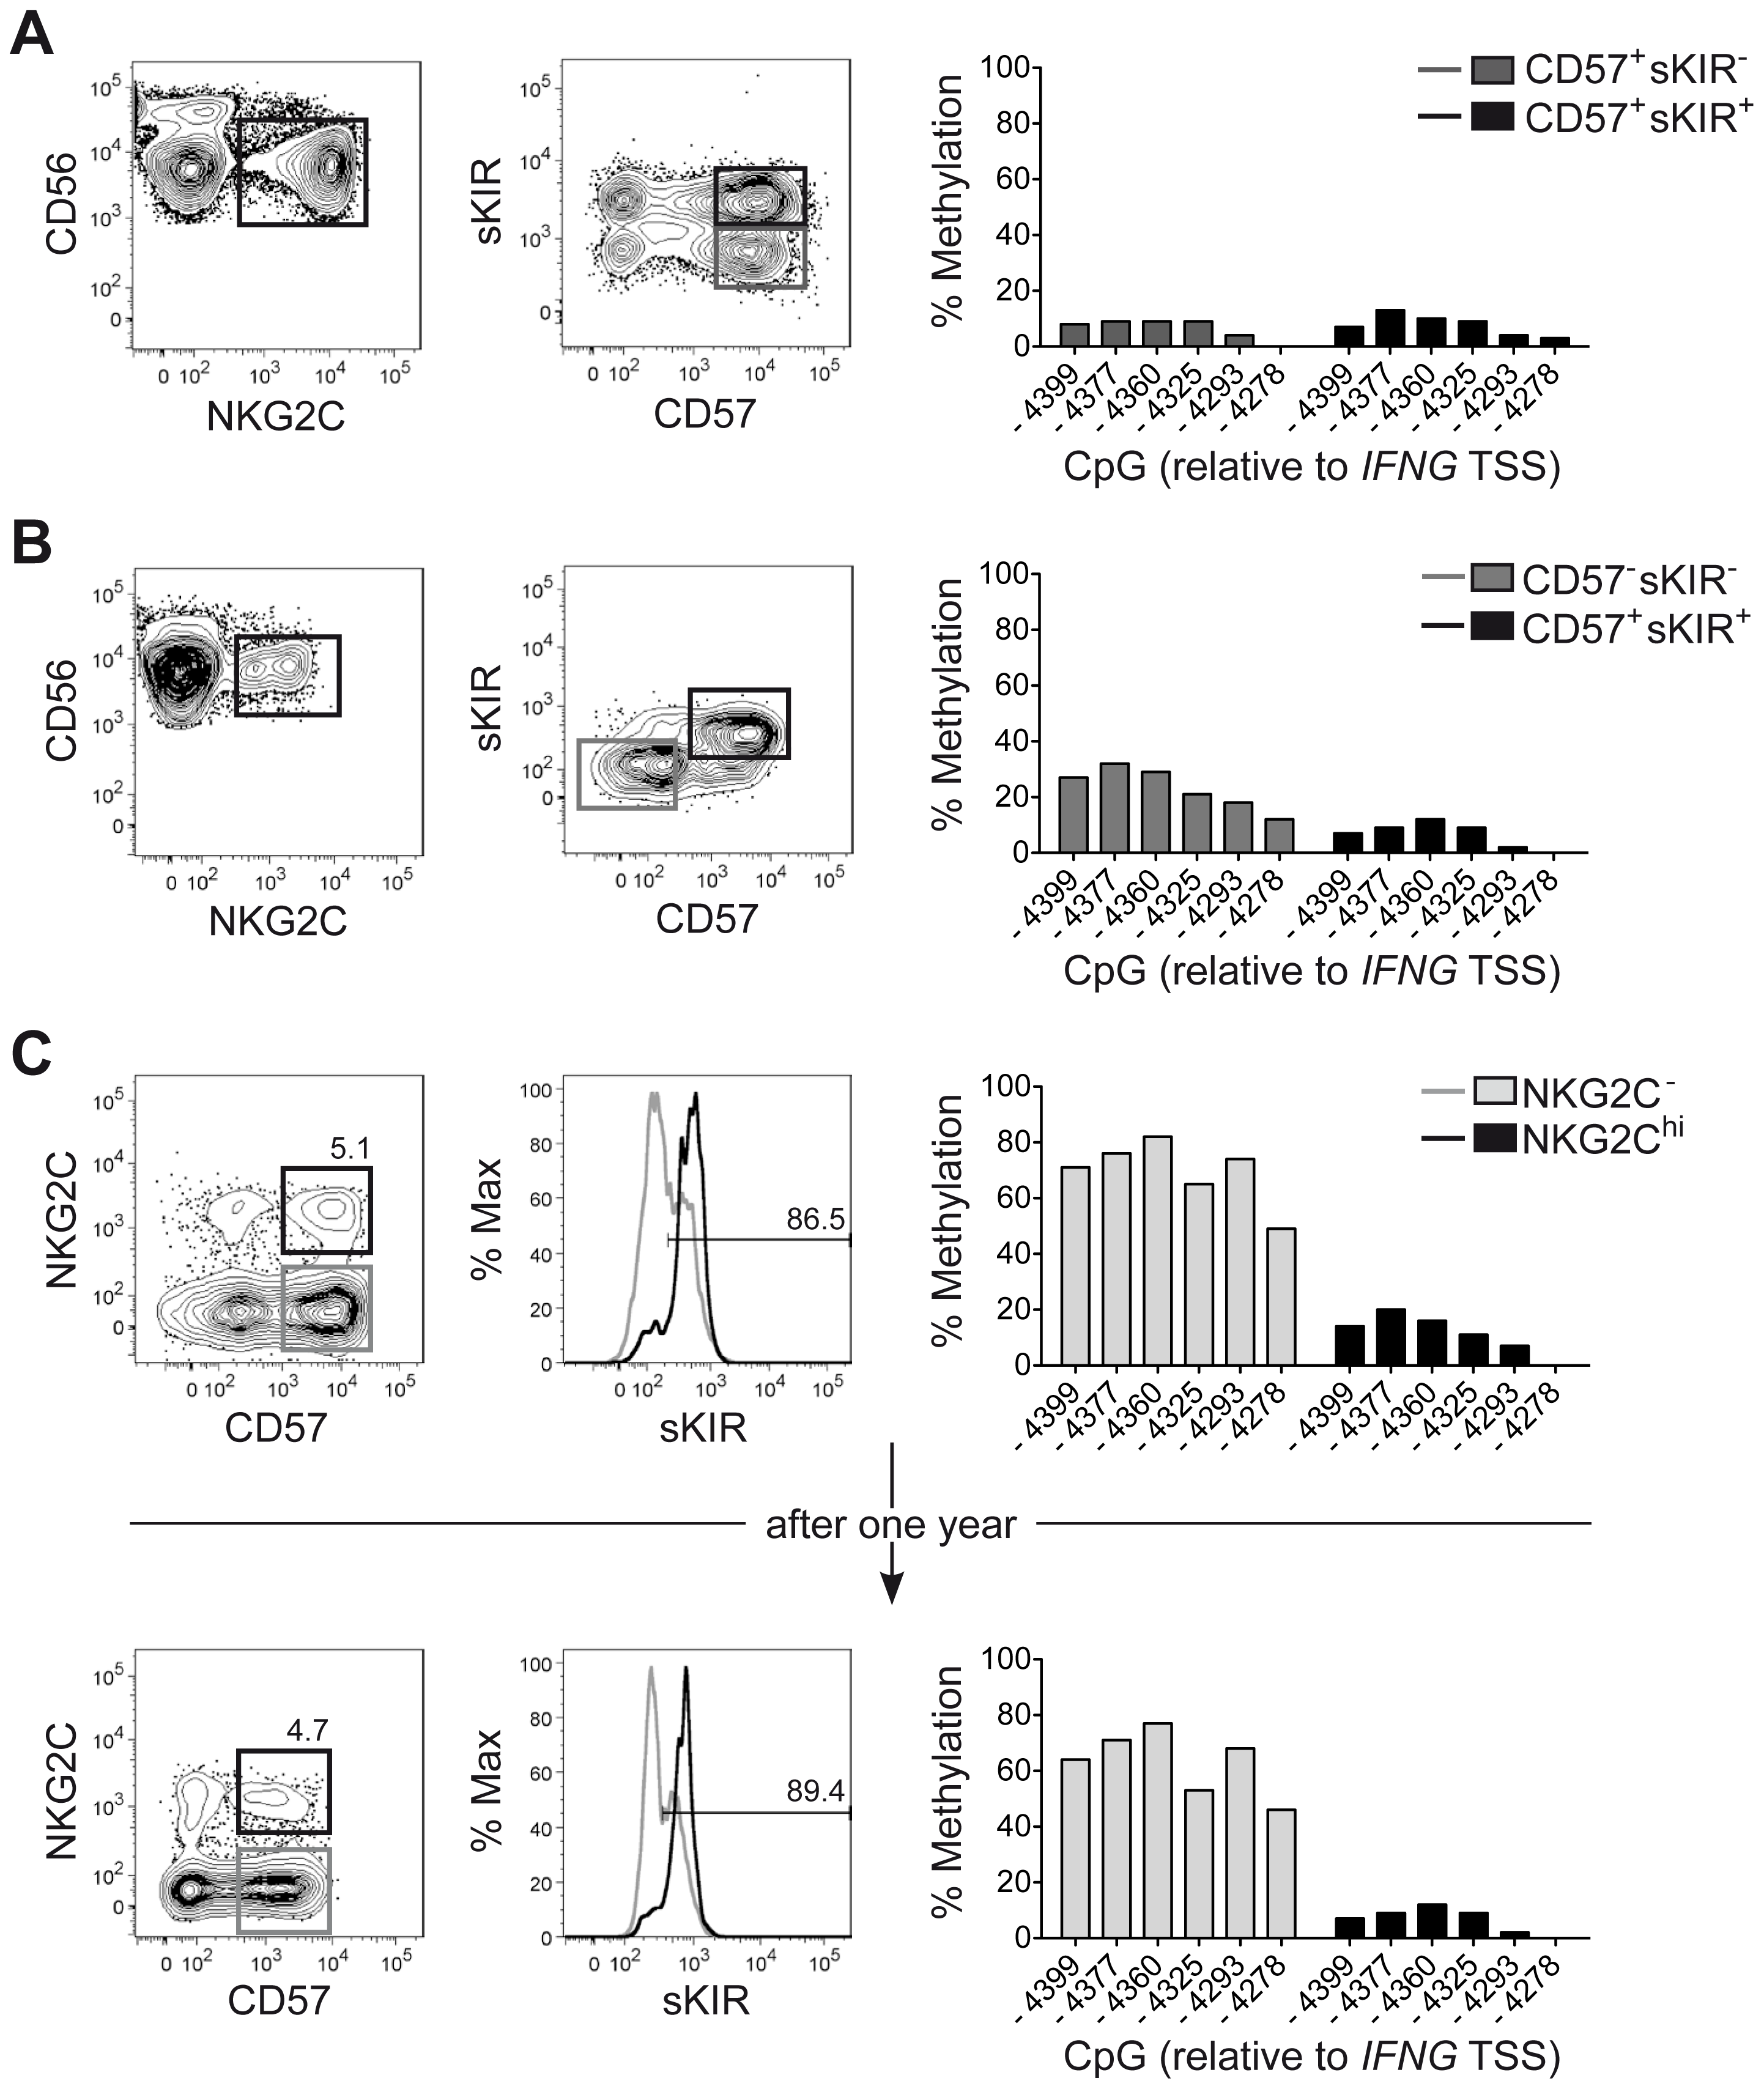 CNS1 demethylation occurs independent of CD57/sKIR expression and is stably imprinted in NKG2C<sup>hi</sup> NK cells.